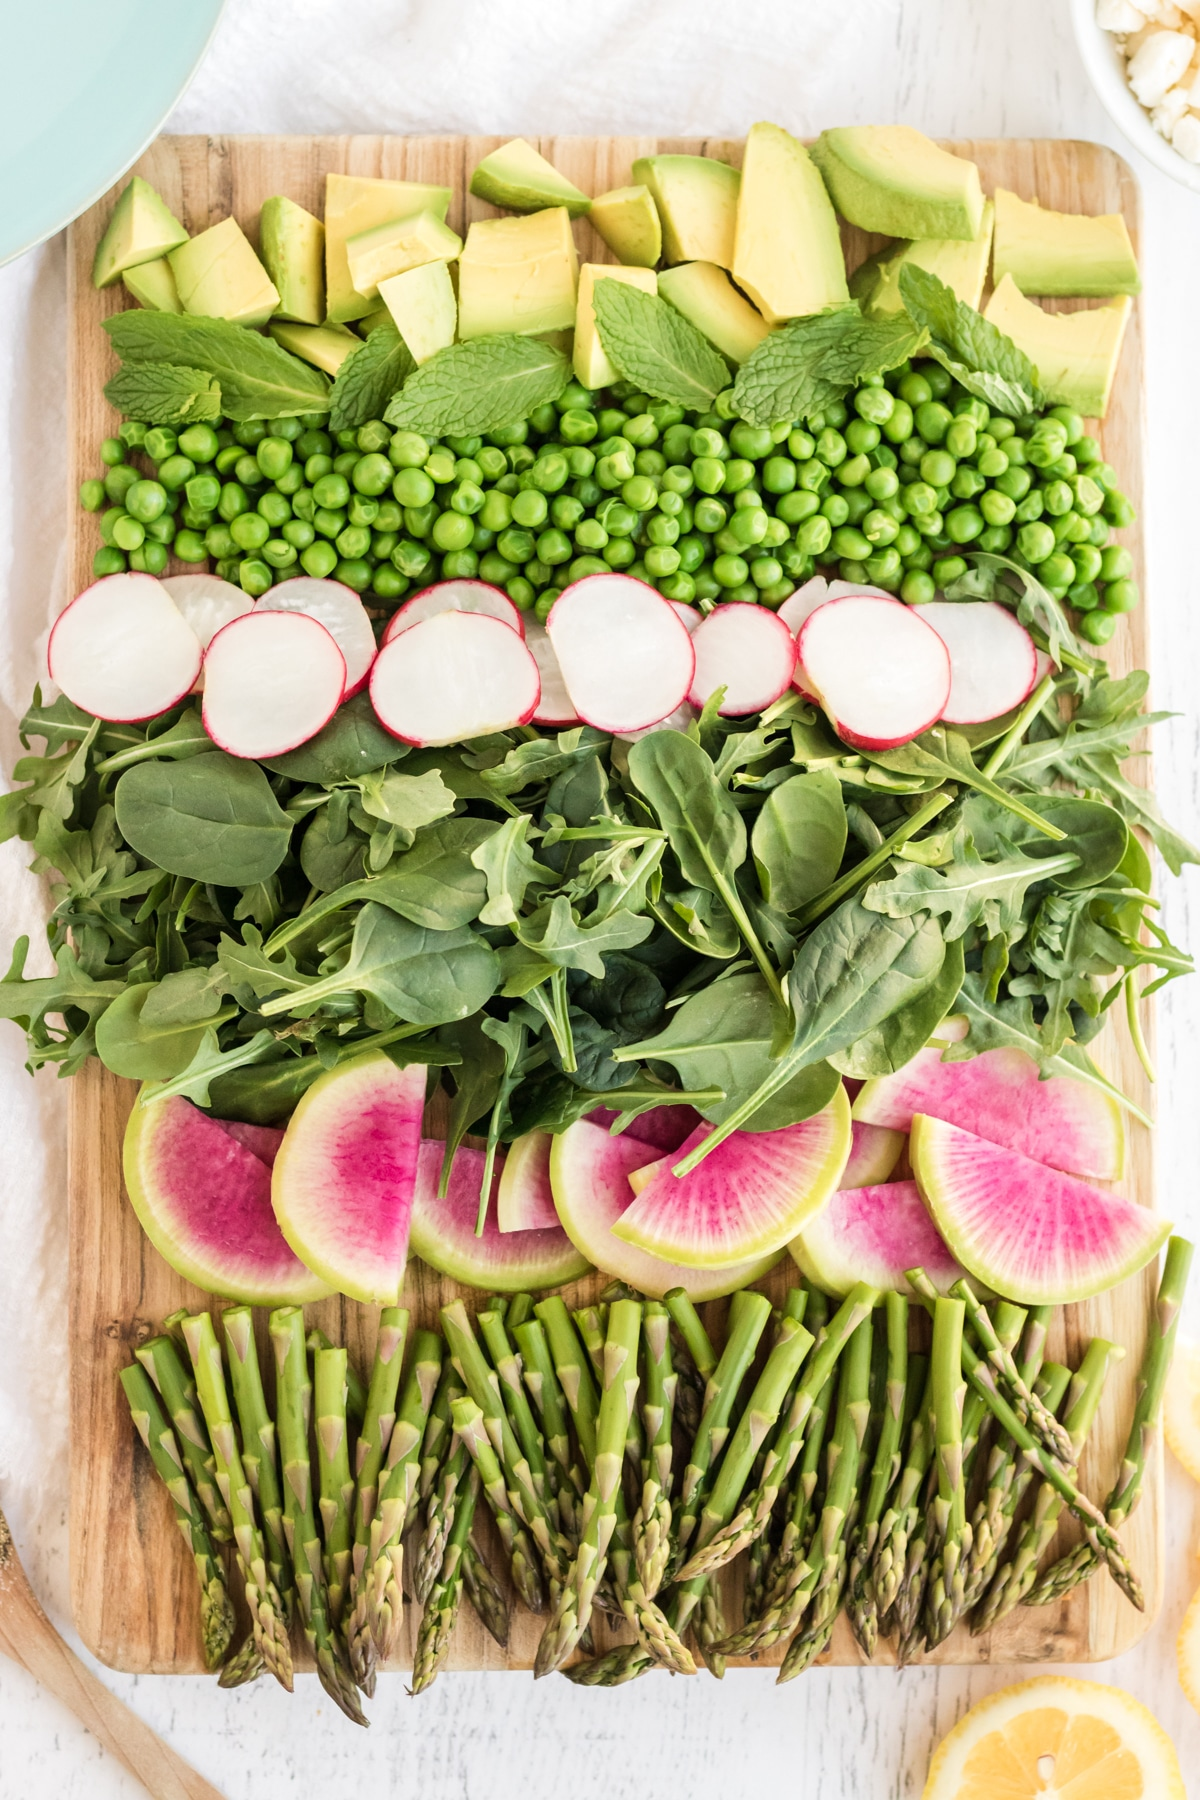 chopped avocado, mint leaves, peas, radishes, spring greens, watermelon radish, and asparagus lined up on a wooden cutting board